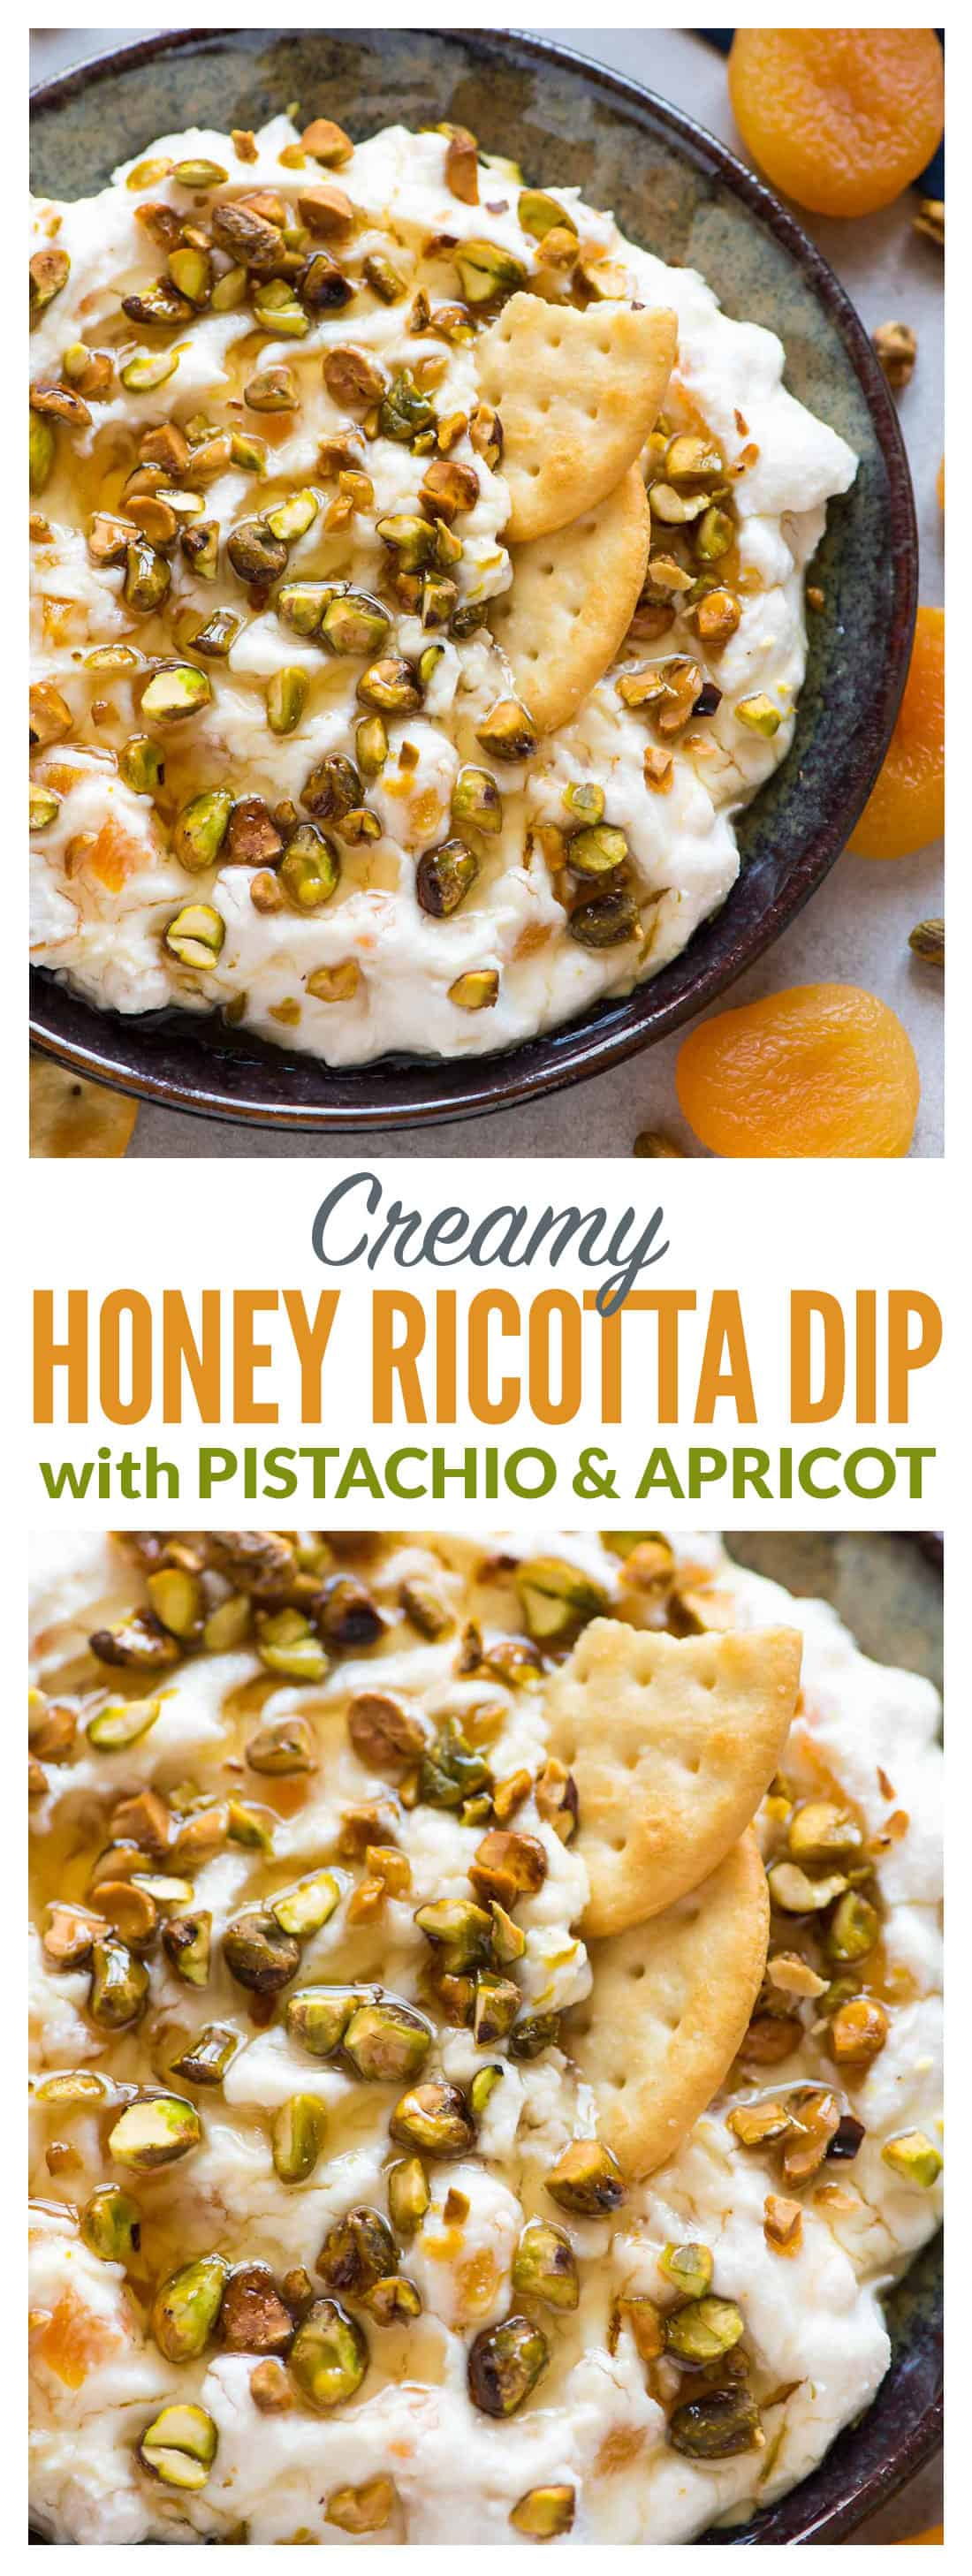 Creamy Honey Ricotta Cream Cheese Dip with Pistachio and Apricot. Easy and delicious recipe served with bread and crackers. One of our favorite appetizers for parties! #appetizer #creamcheesedip #easy